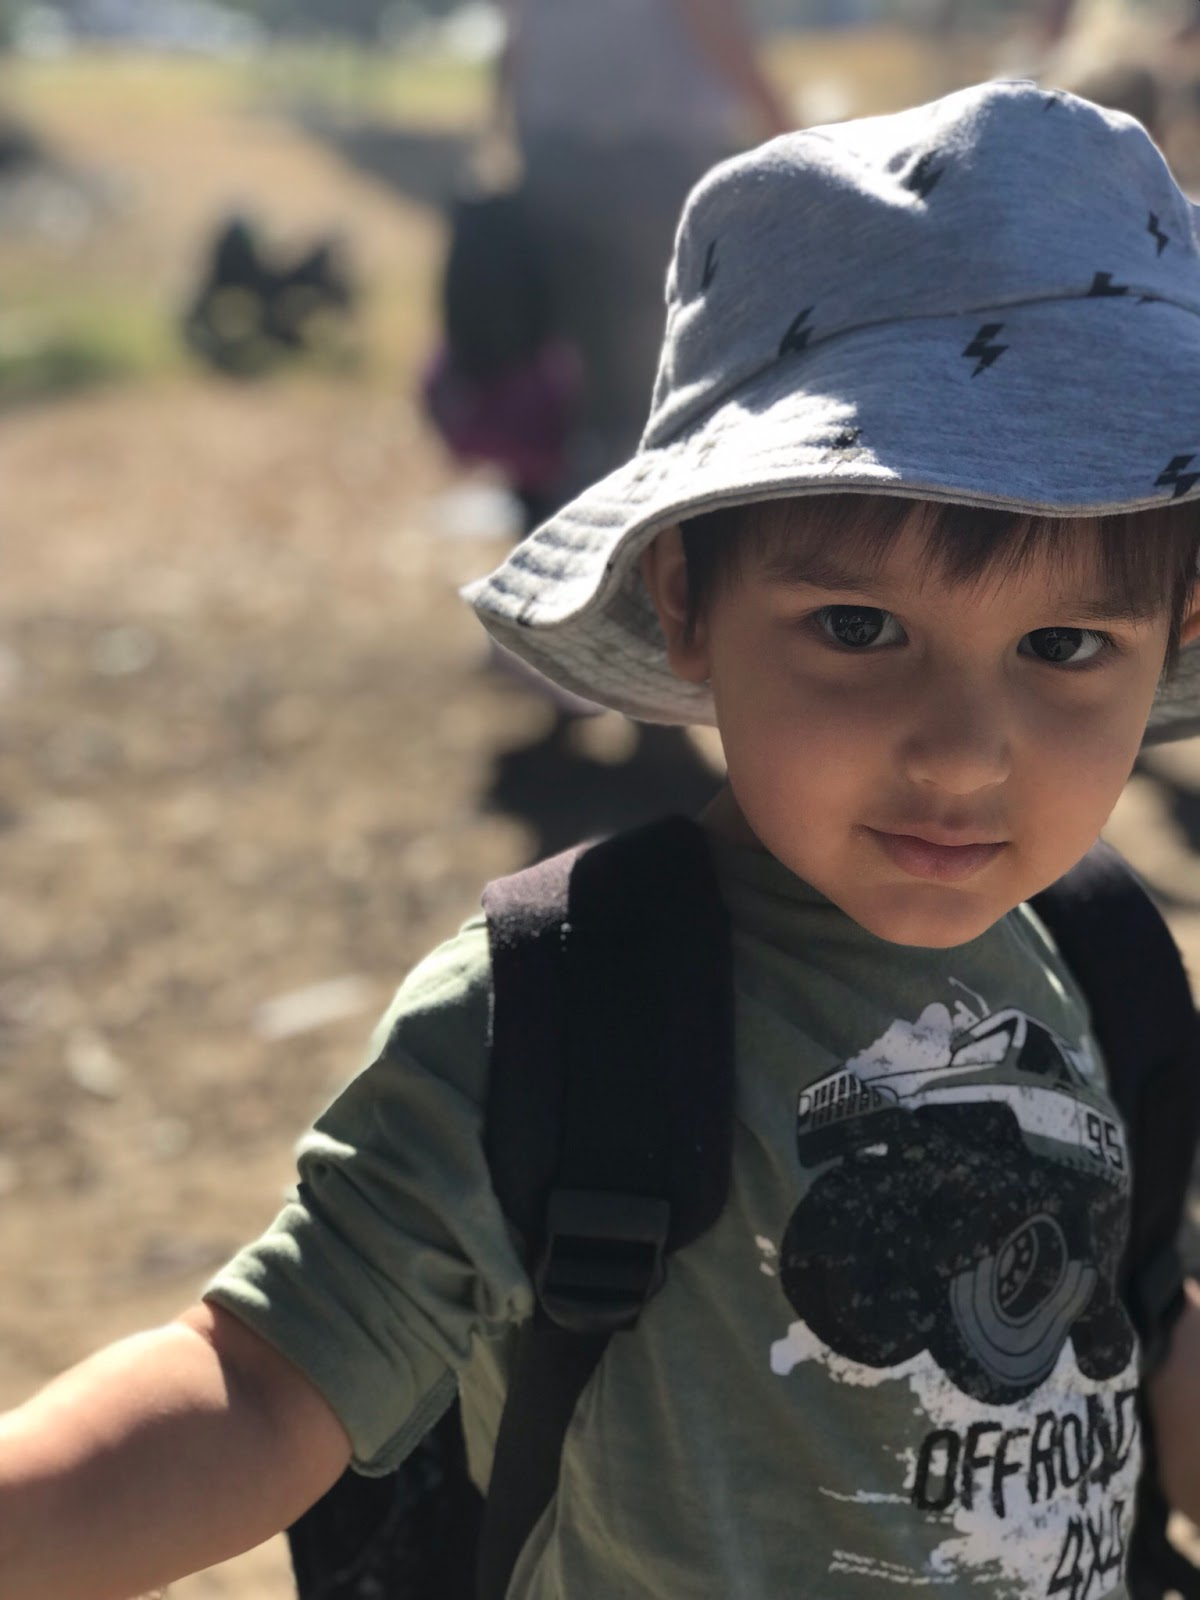 Image is a close-up photograph of a mixed race Asian toddler who is looking directly at the camera. He is wearing a grey wide brim hat, and an olive green long sleeve top. He is also wearing a backpack, although only the black shoulder straps are visible.